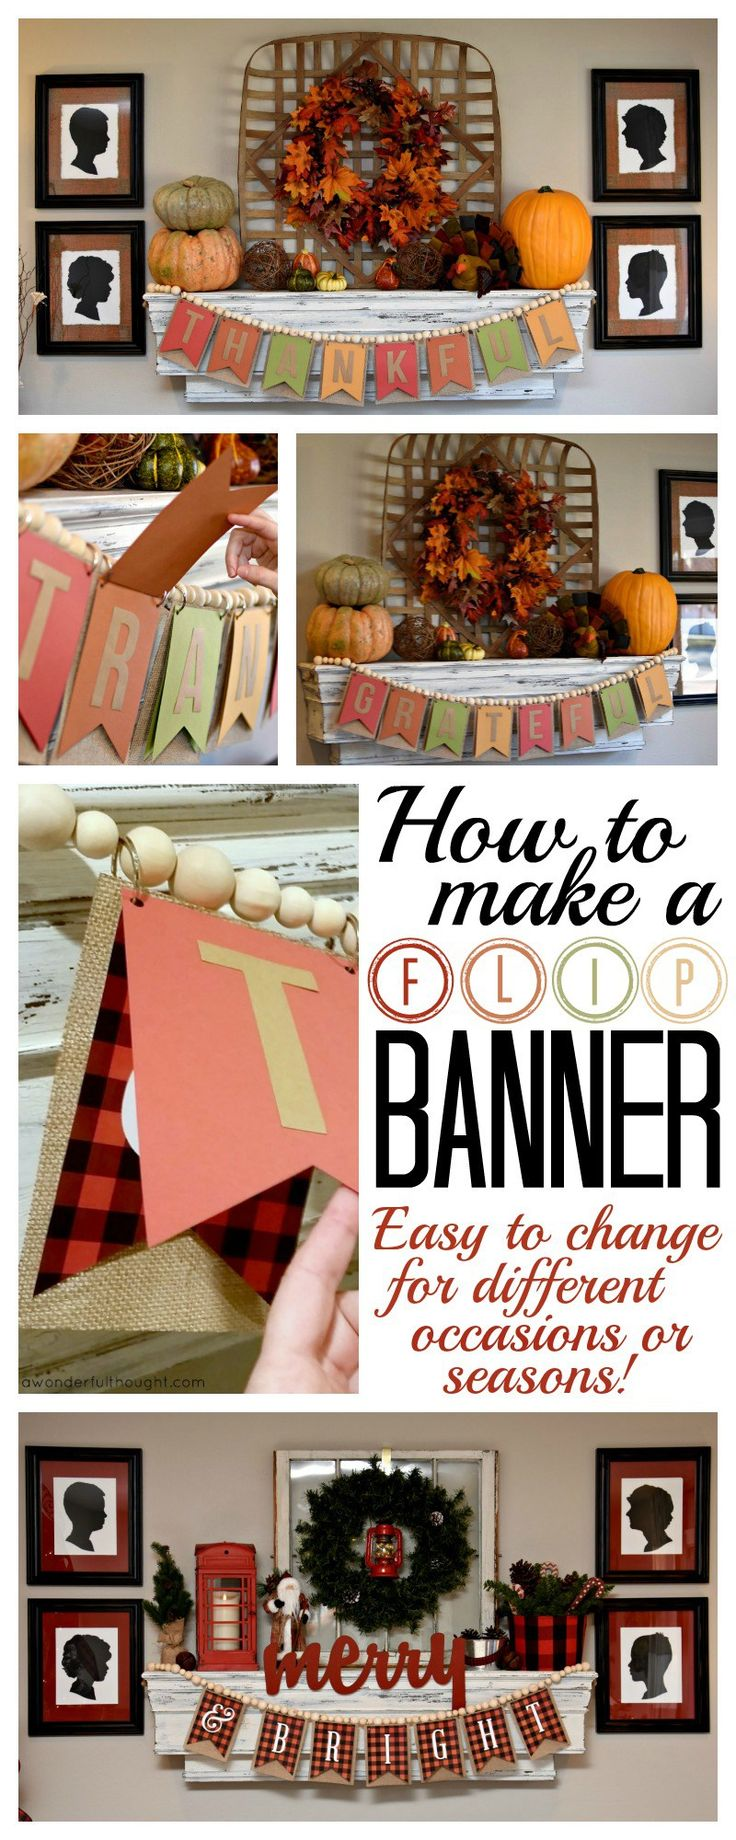 A Wonderful Thought | How to Make a Flip Banner | awonderfulthought.com